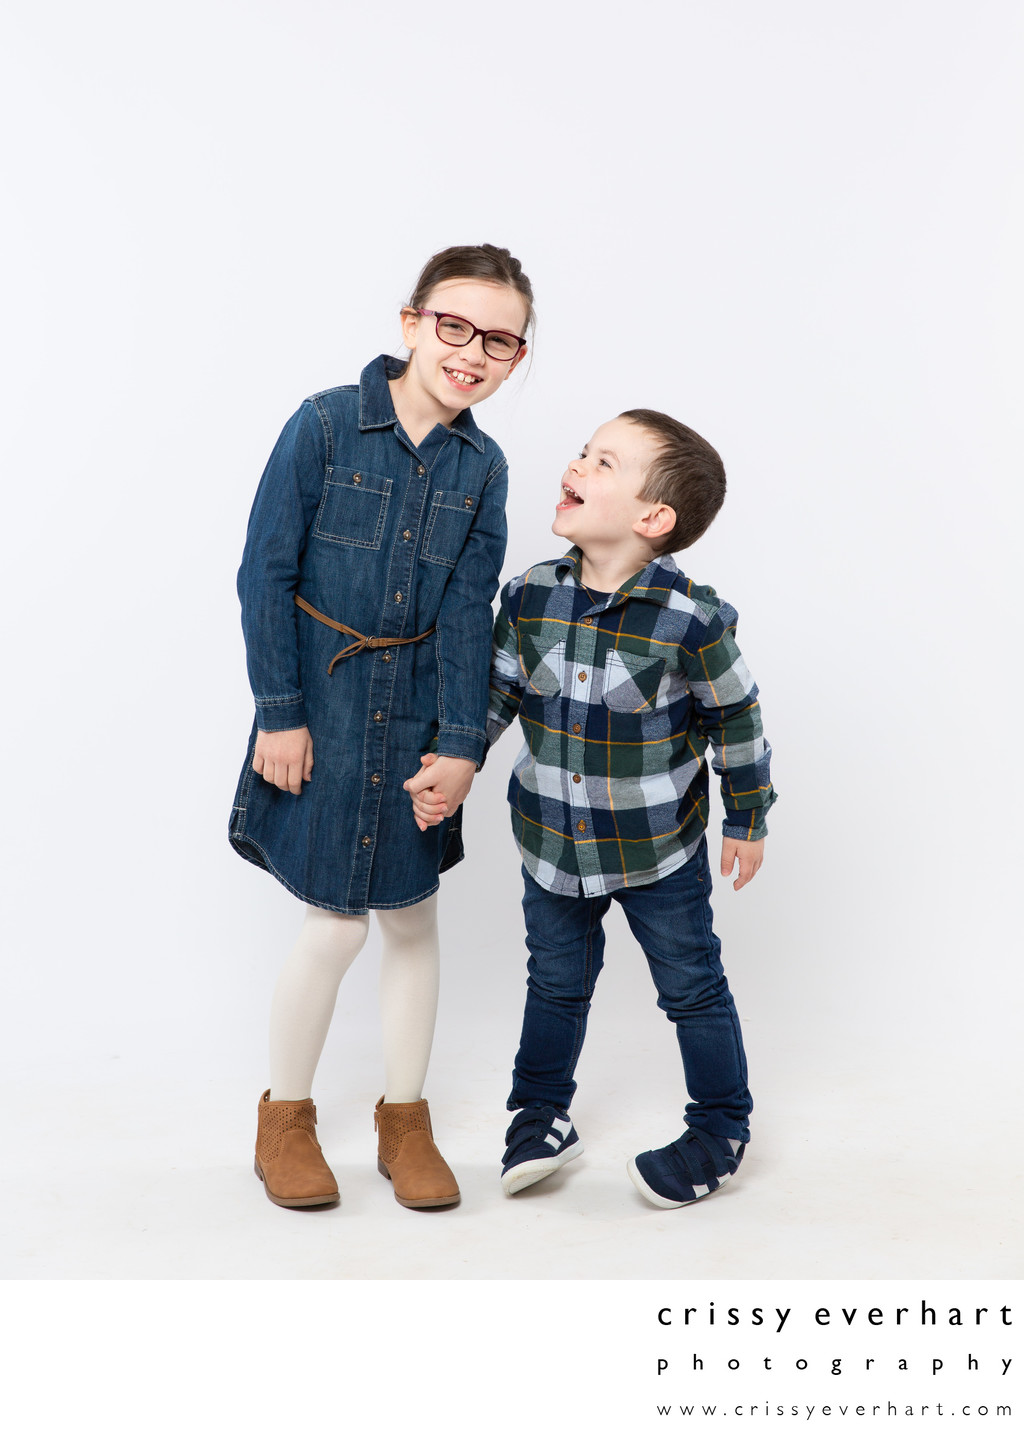 Best Family Portrait Studio in Malvern